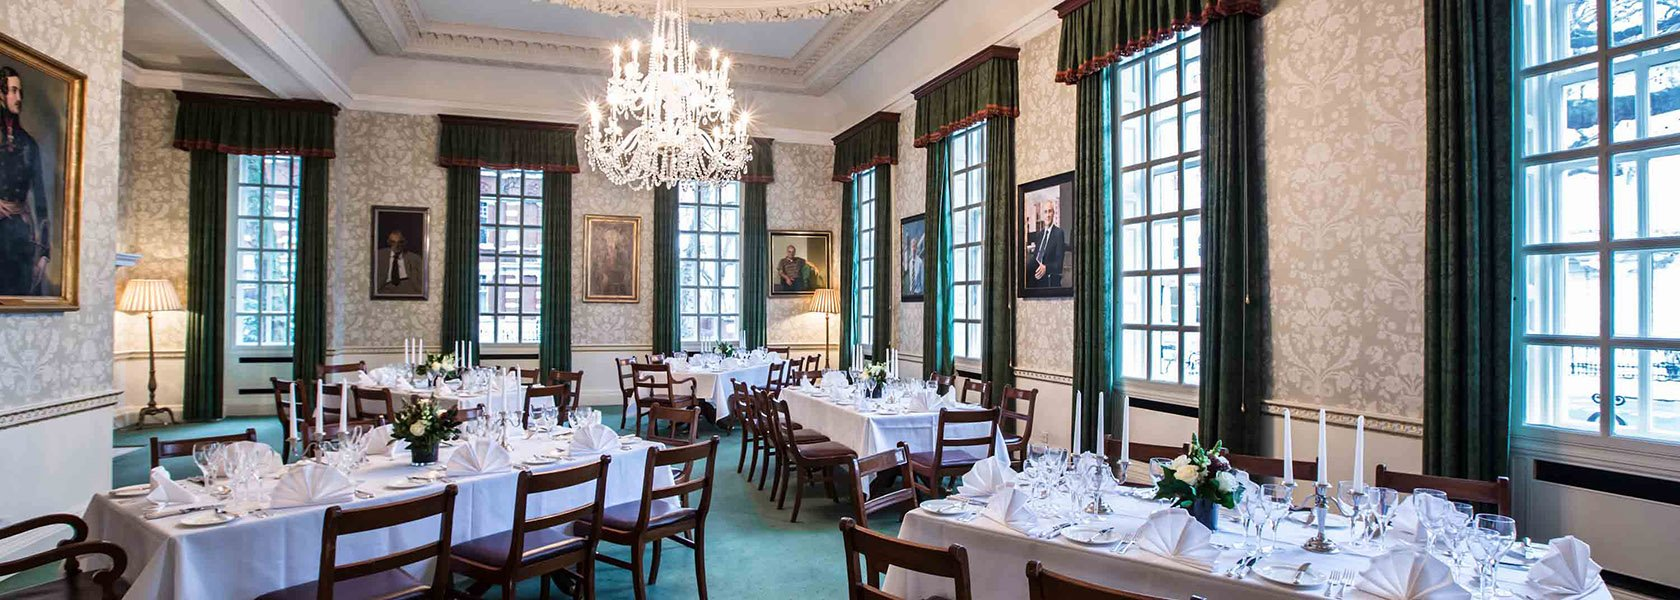 Venue hire in South Kensington